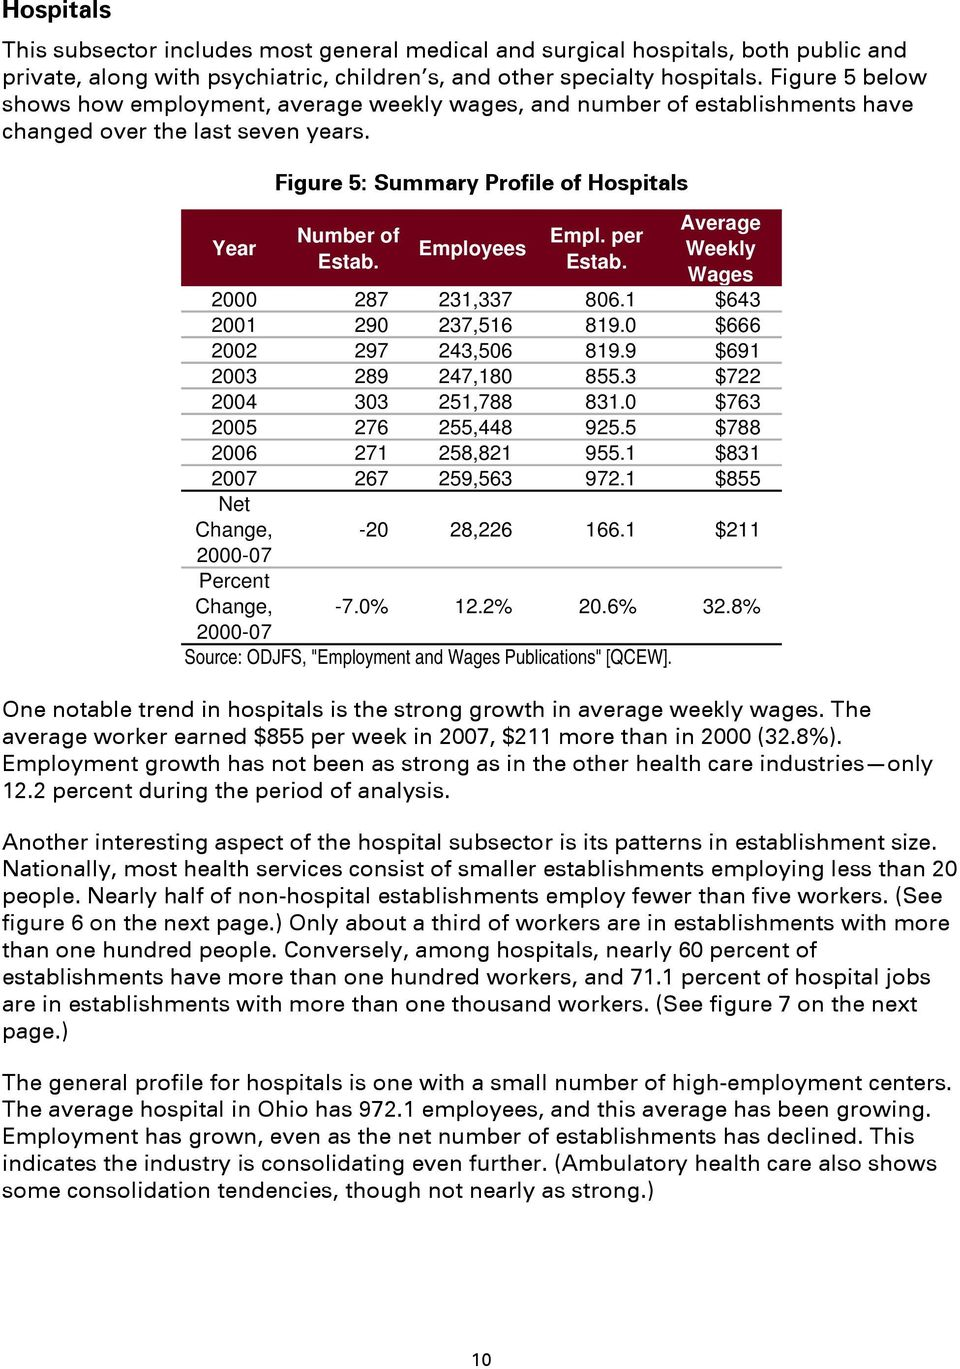 Employees Empl. per Estab. Average Weekly Wages 2000 287 231,337 806.1 $643 2001 290 237,516 819.0 $666 2002 297 243,506 819.9 $691 2003 289 247,180 855.3 $722 2004 303 251,788 831.